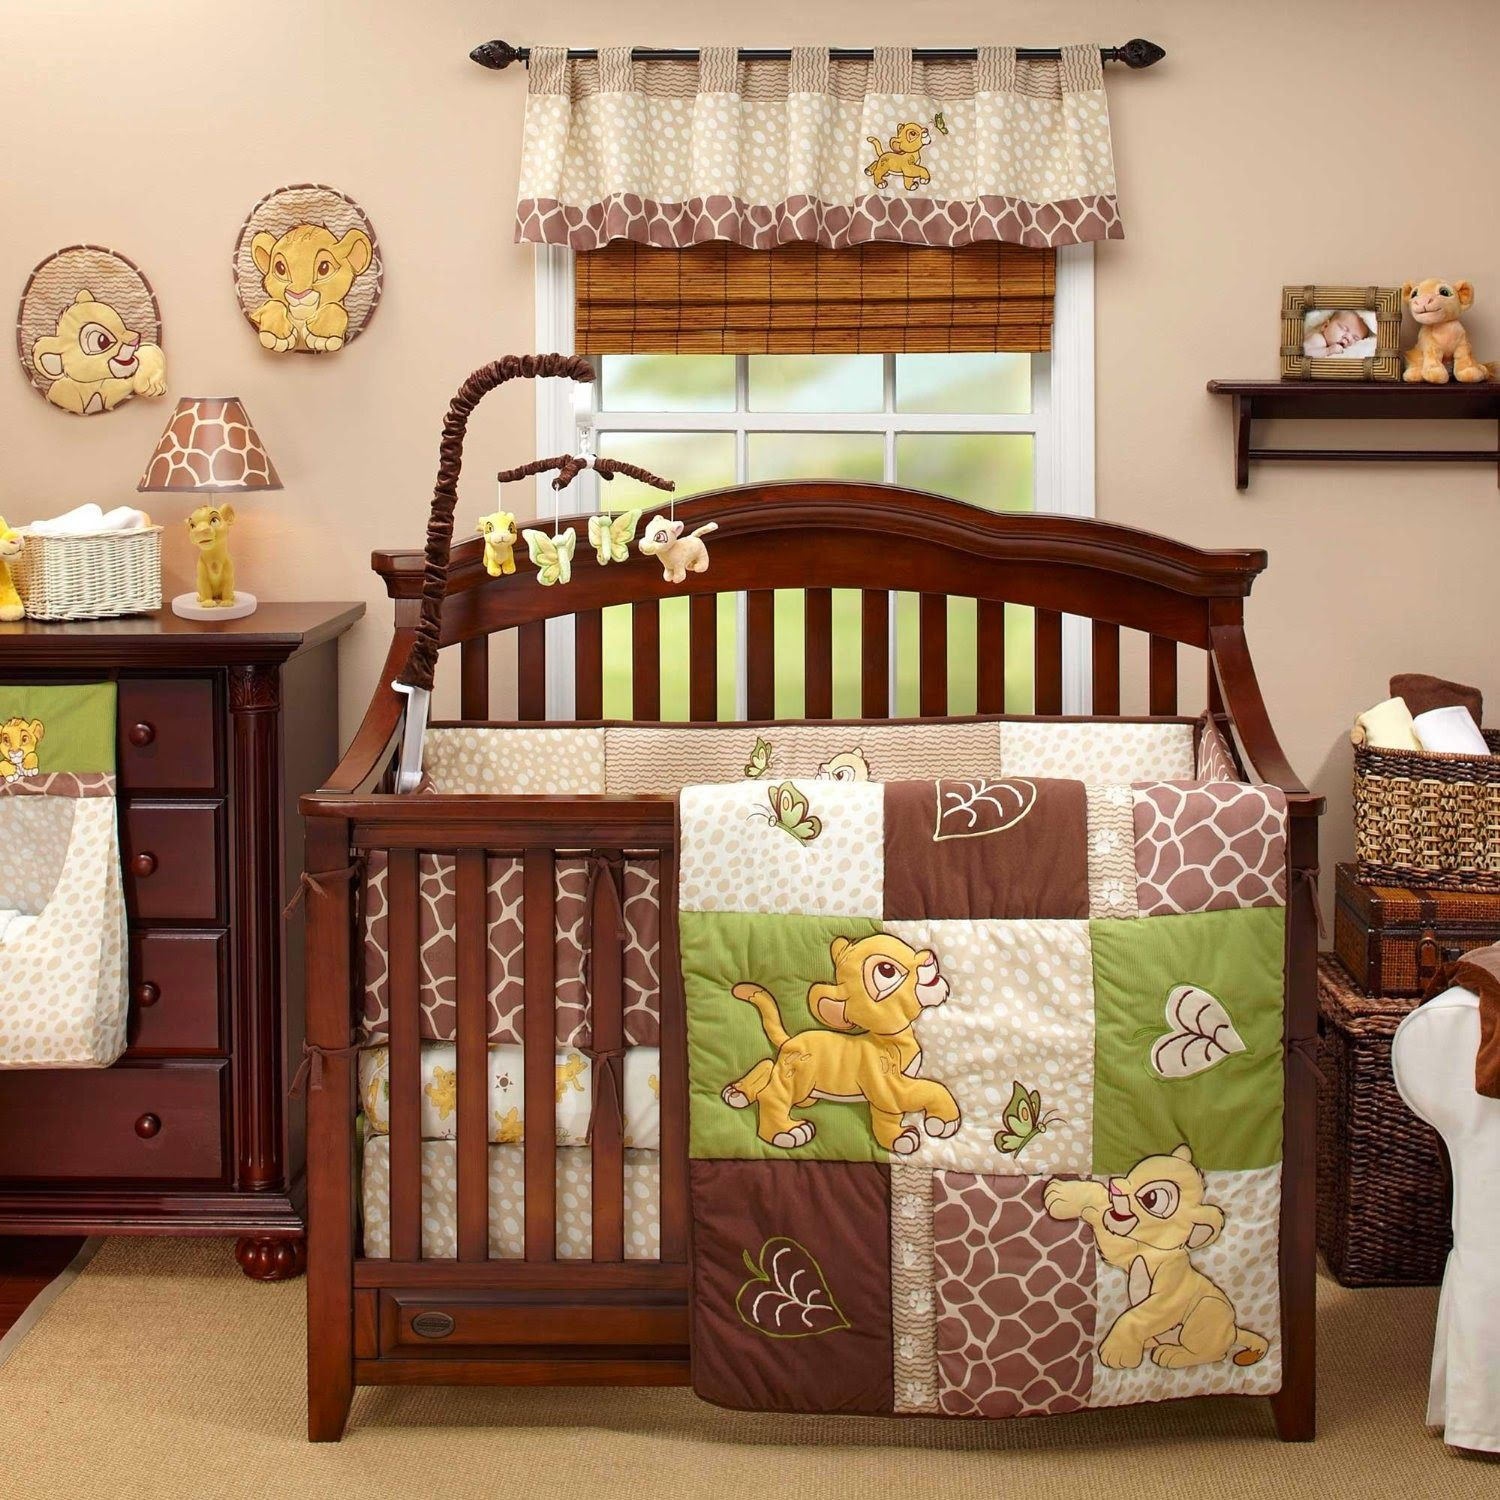 Baby boy room decor pinterest - We Found A Ton Of Lion King Baby Nursery Decor And Crib Sets